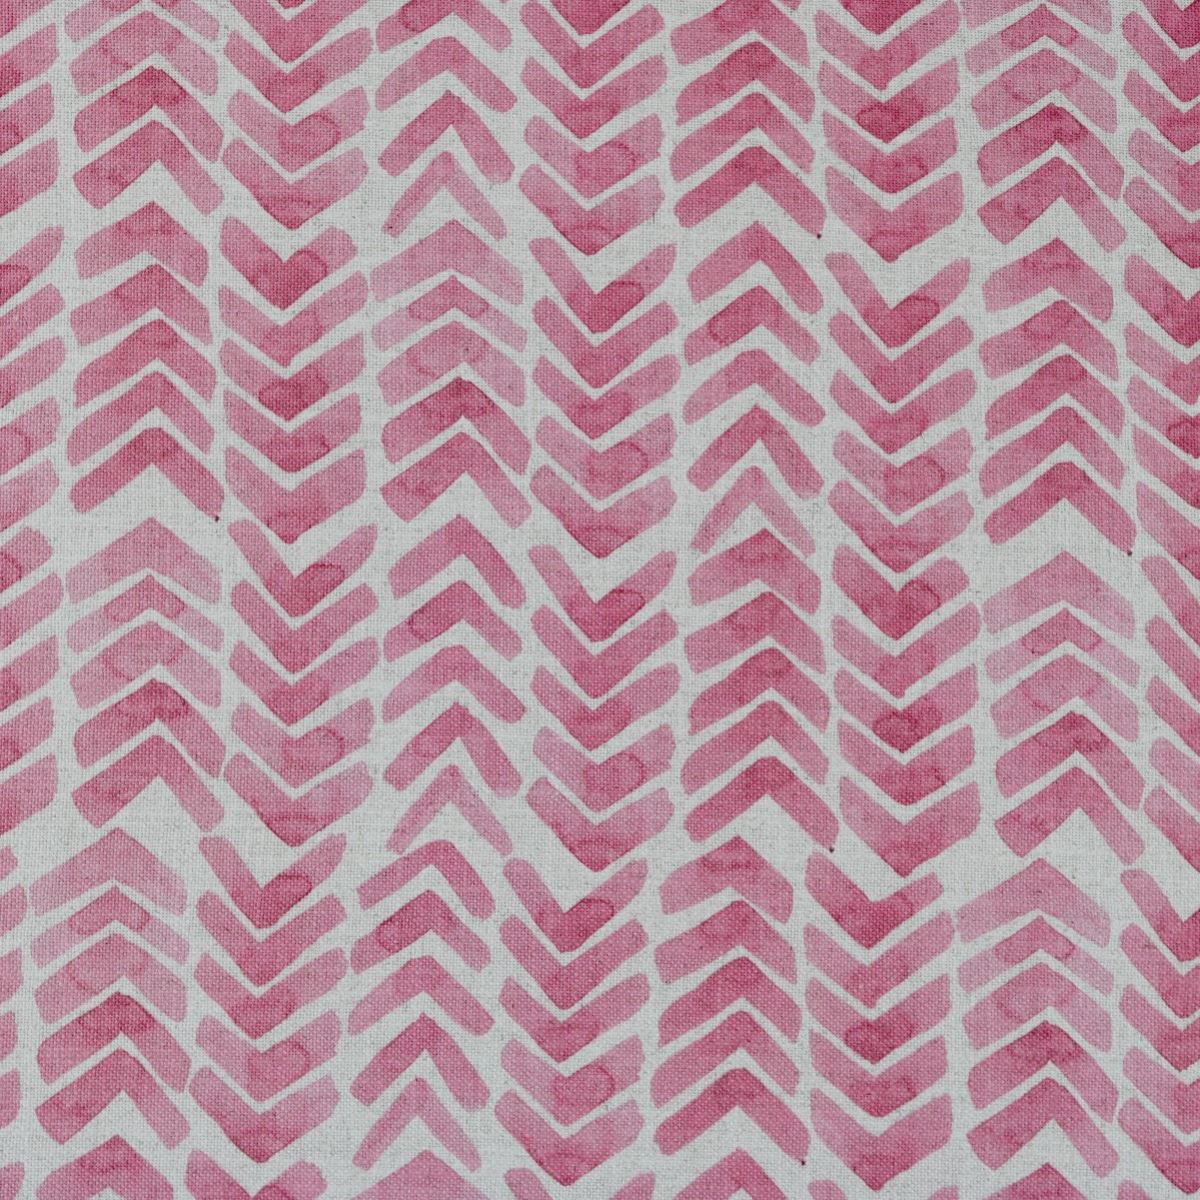 Upholstery Fabric For Curtains Patterned Linen Aloe Pink